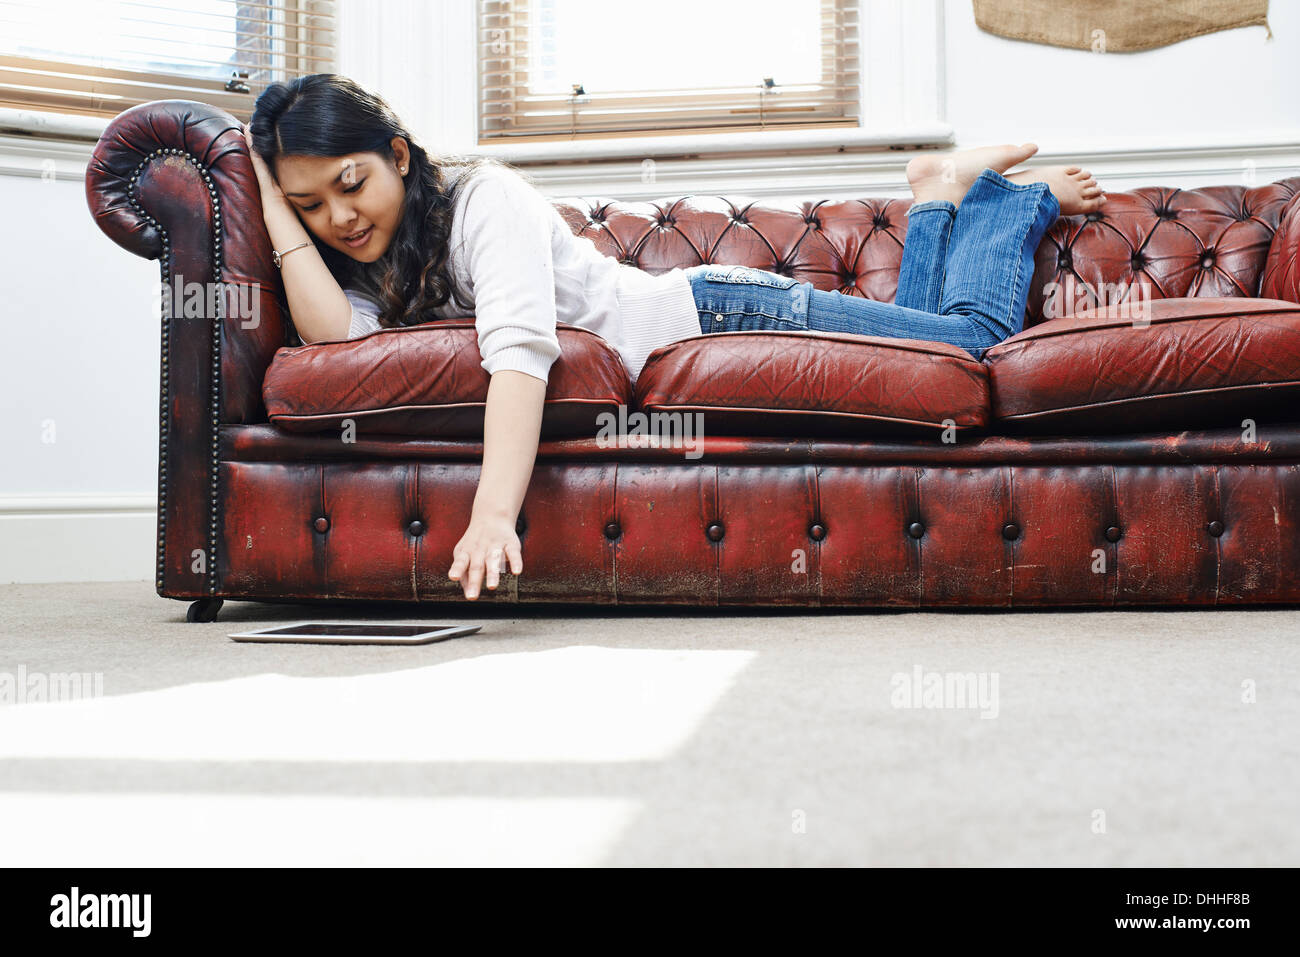 Young woman lying on sofa reaching for digital tablet - Stock Image